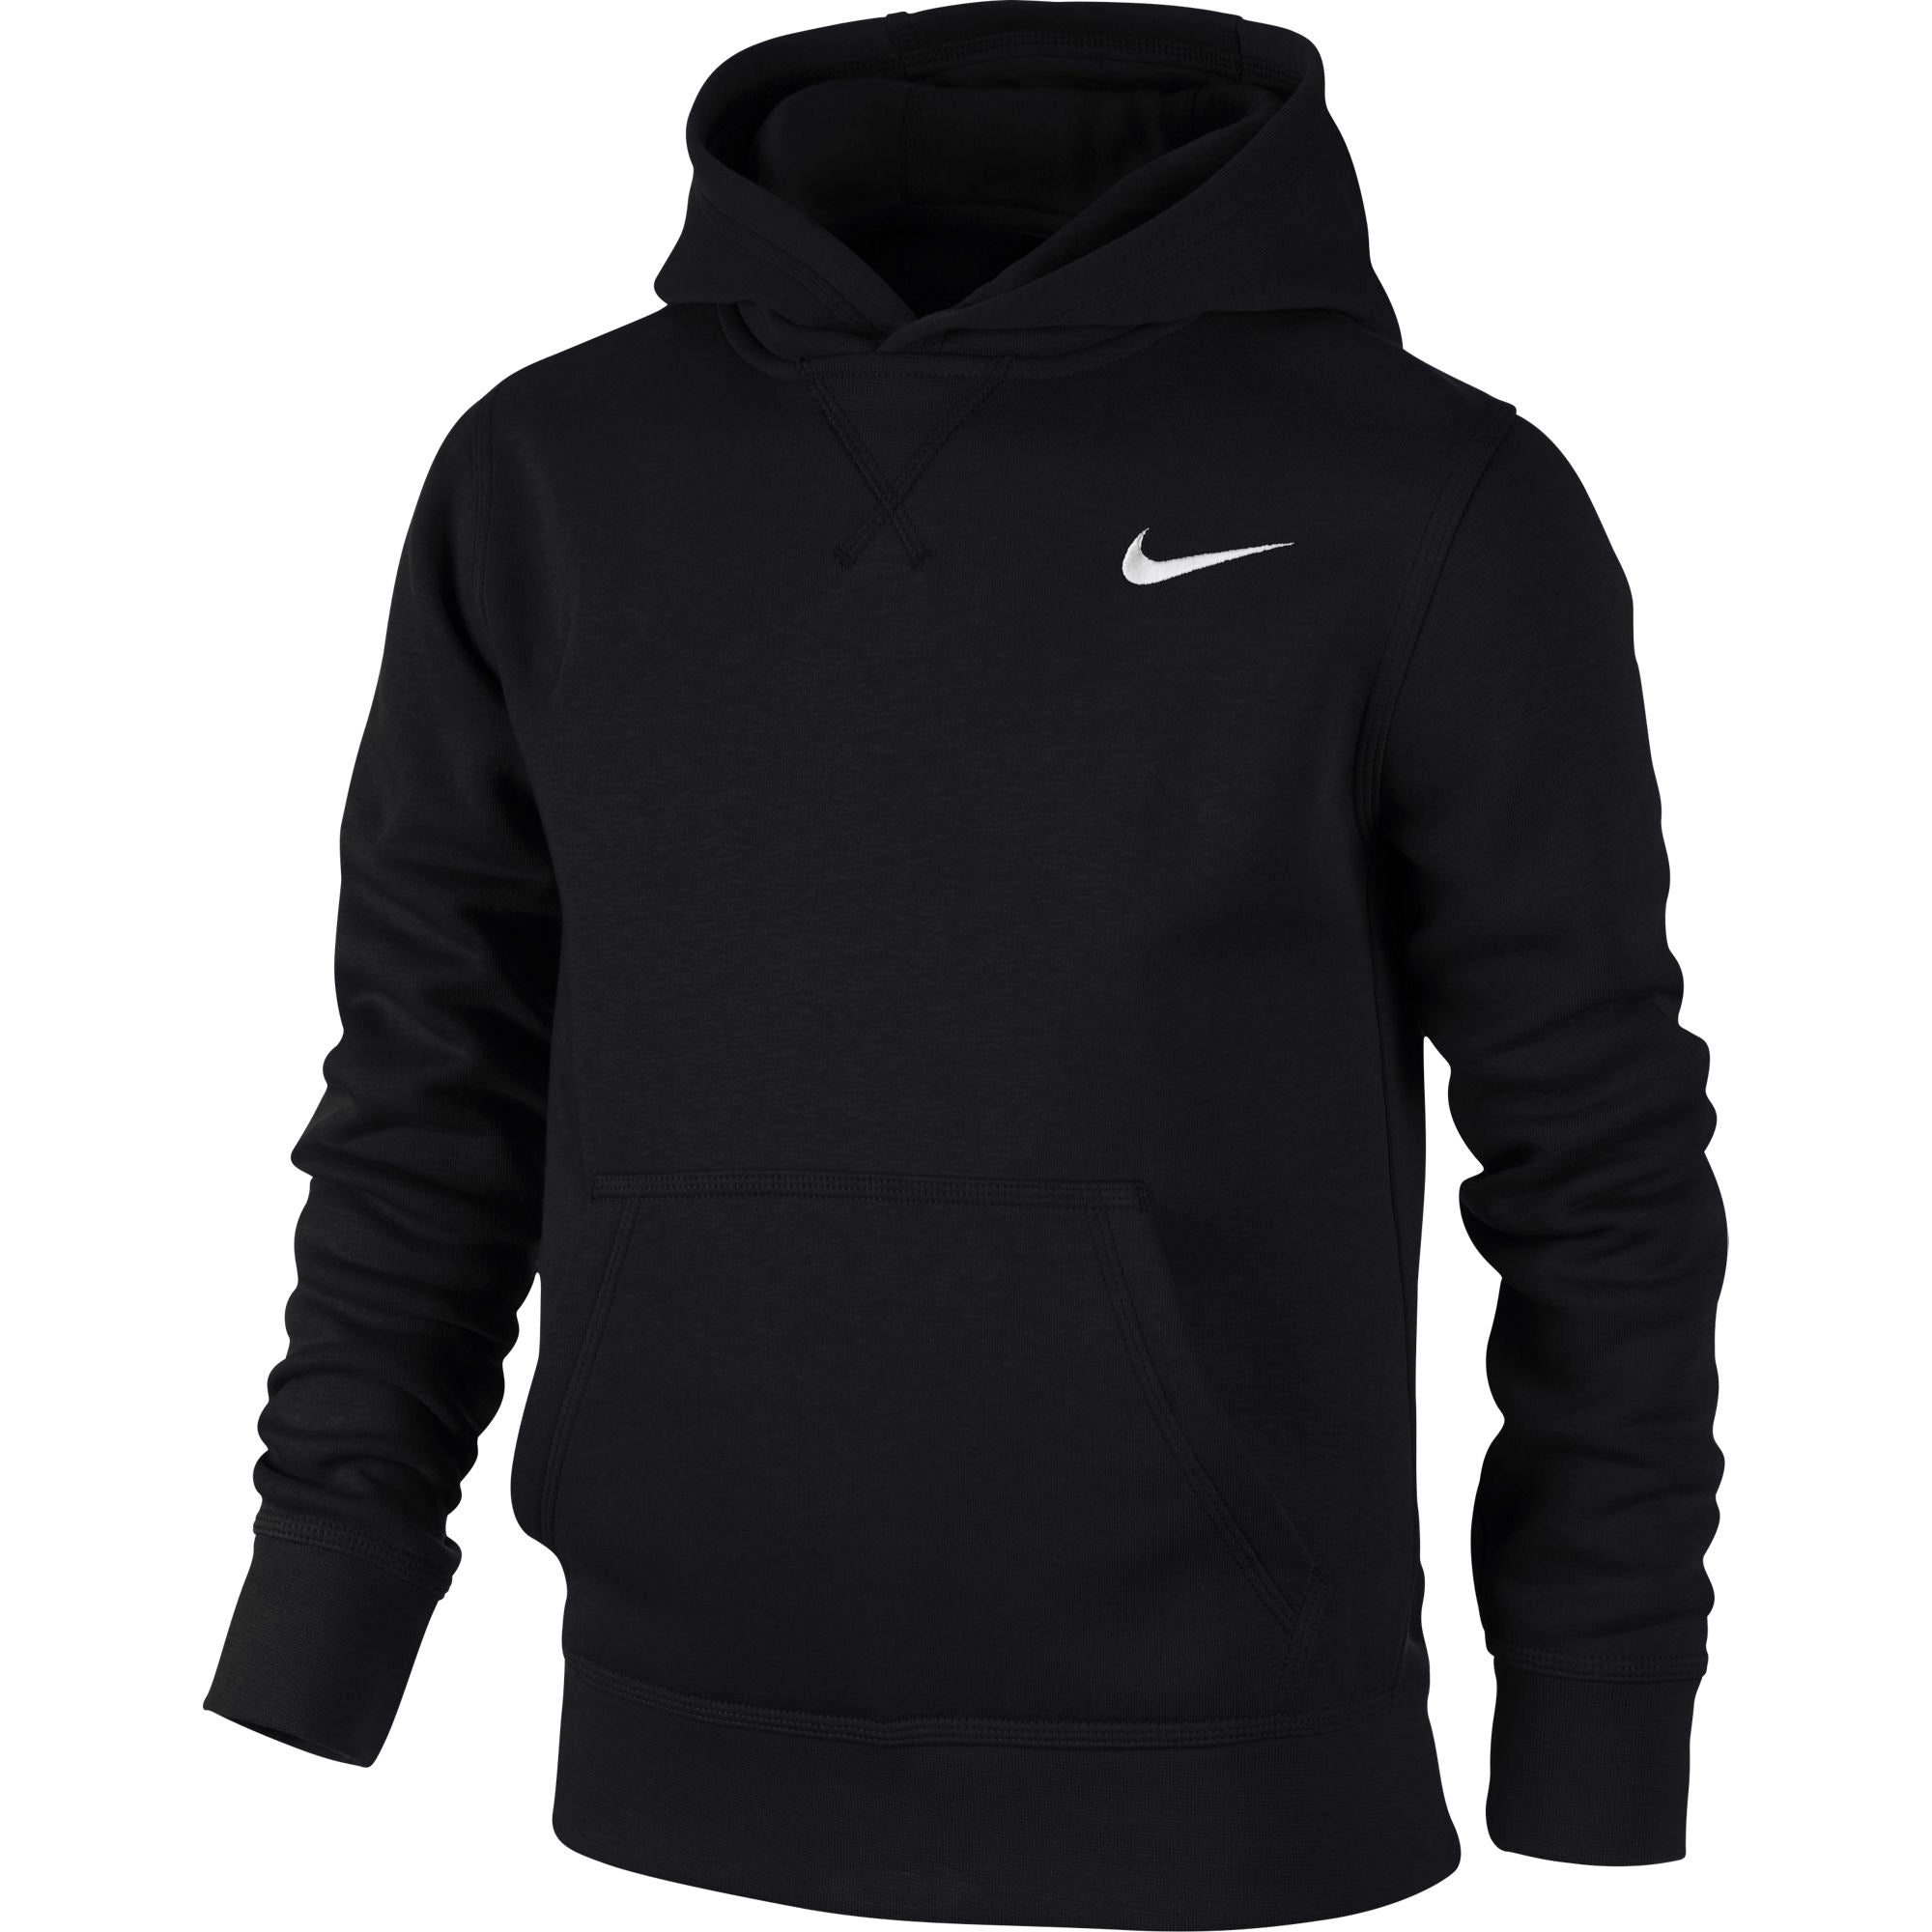 Nike Kids YA76 Brushed Fleece Pull-On Hoodie - NK-619080-010